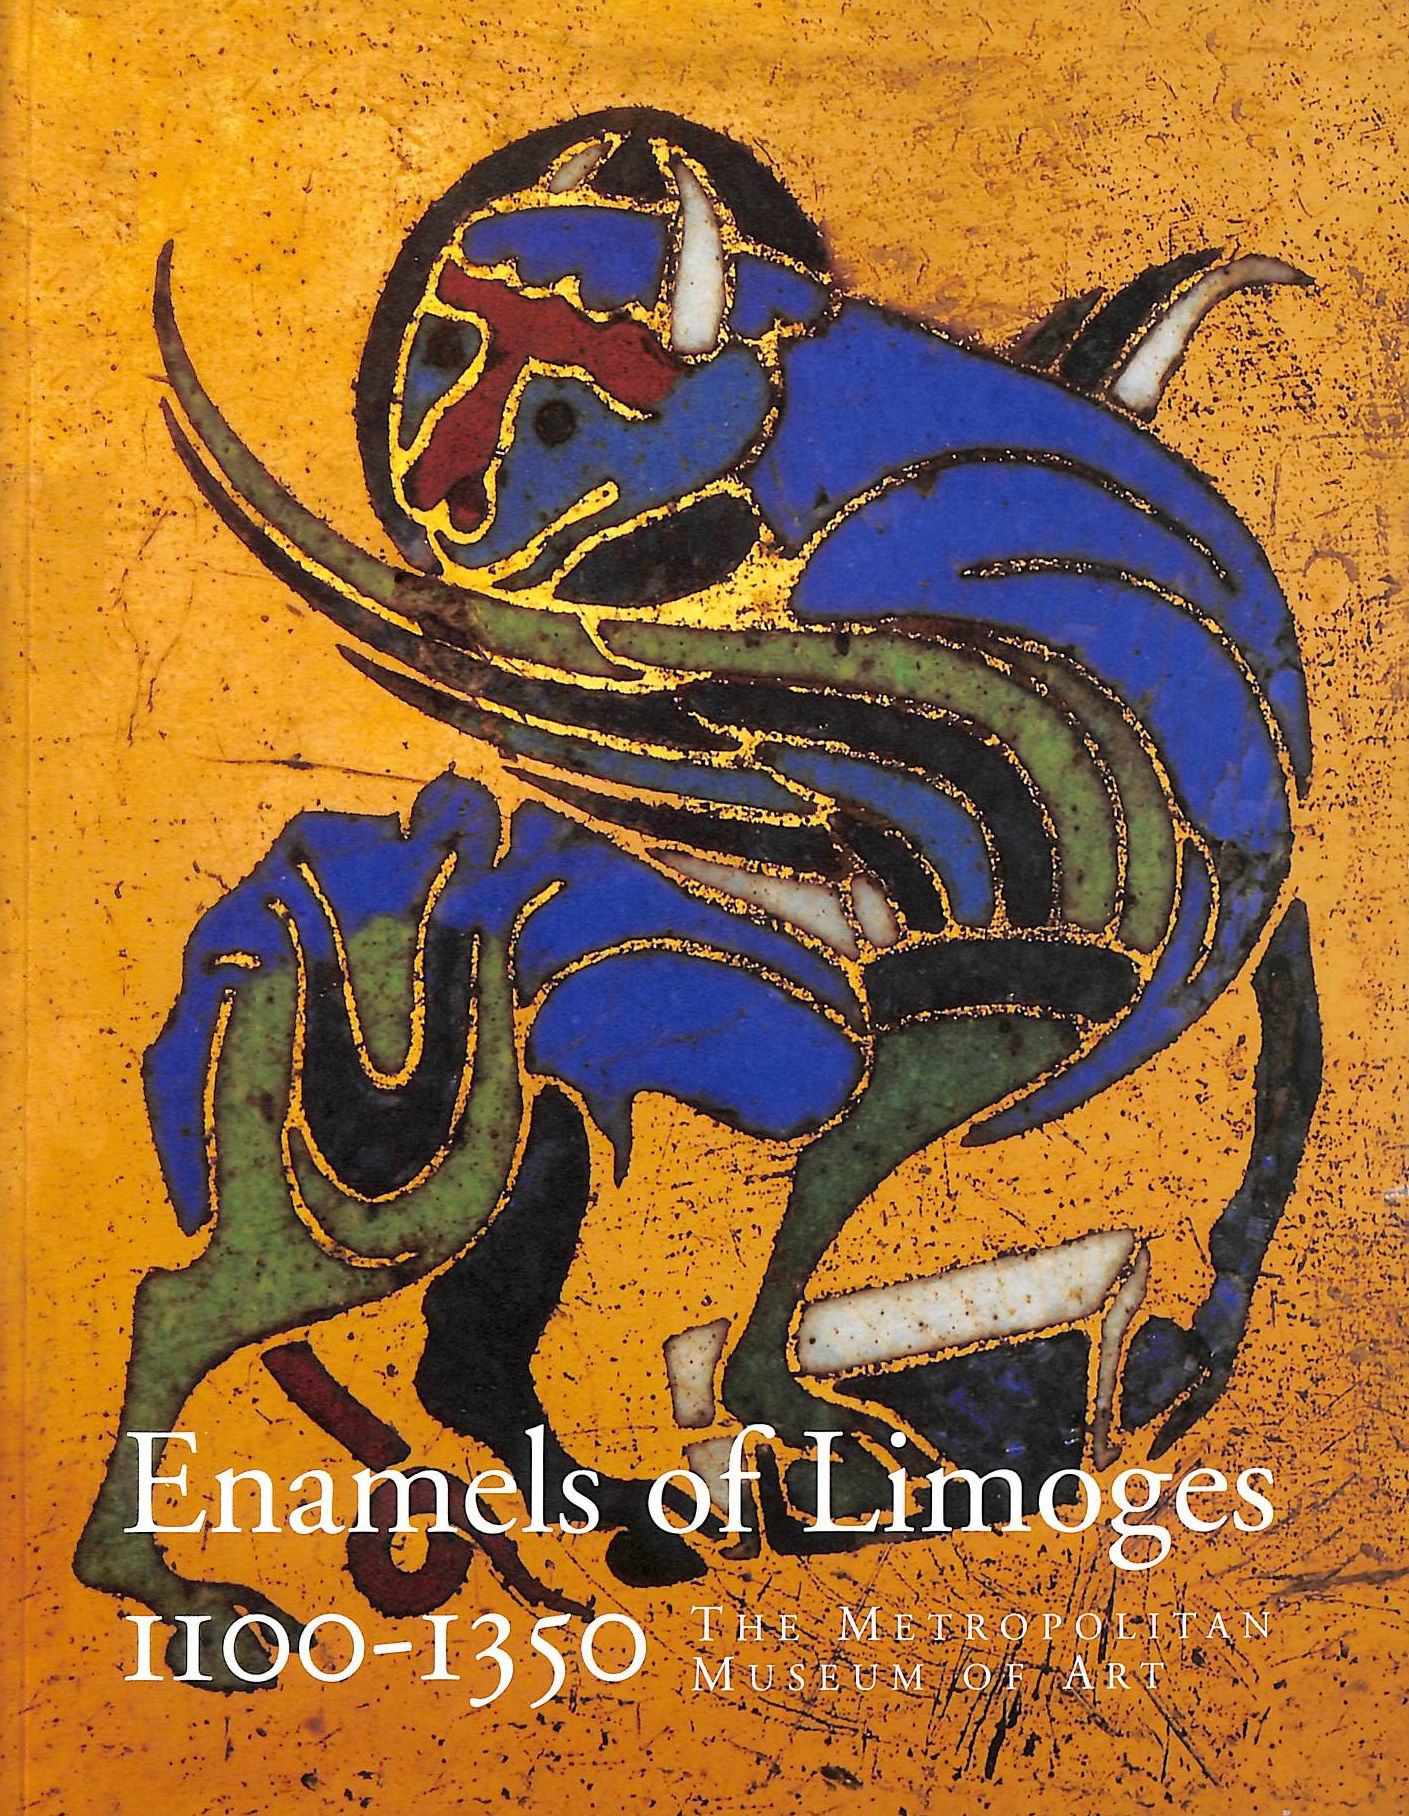 Image for Enamels of Limoges: 1100-1350